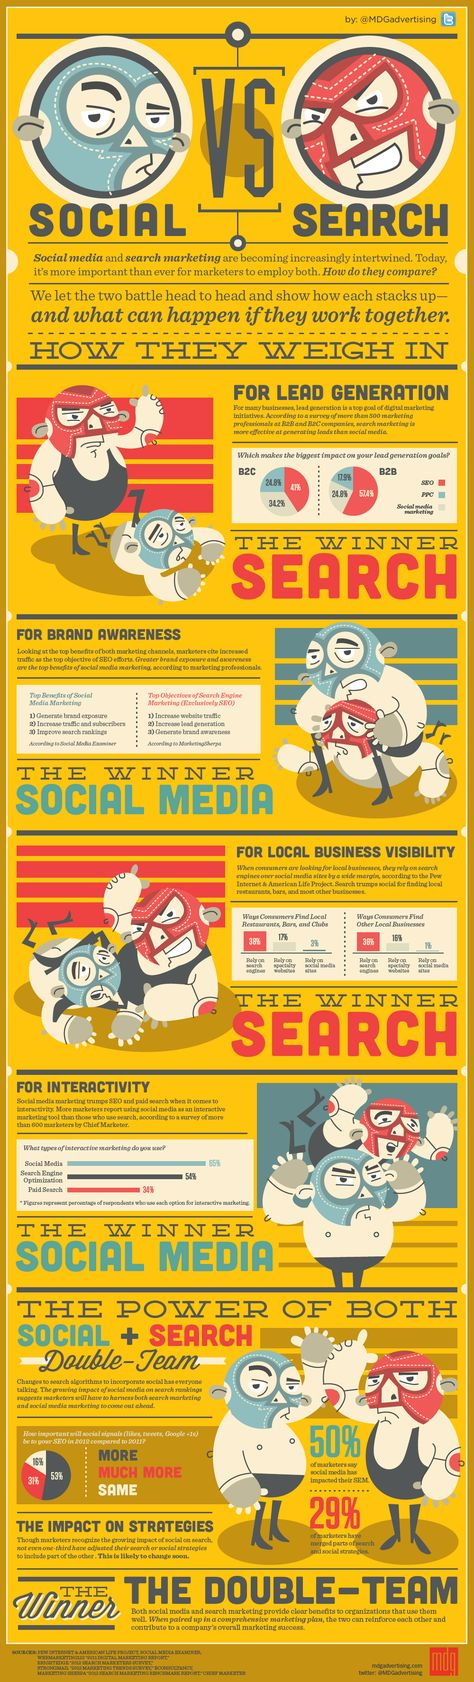 Social vs Search [Infographic] | MDG Advertising